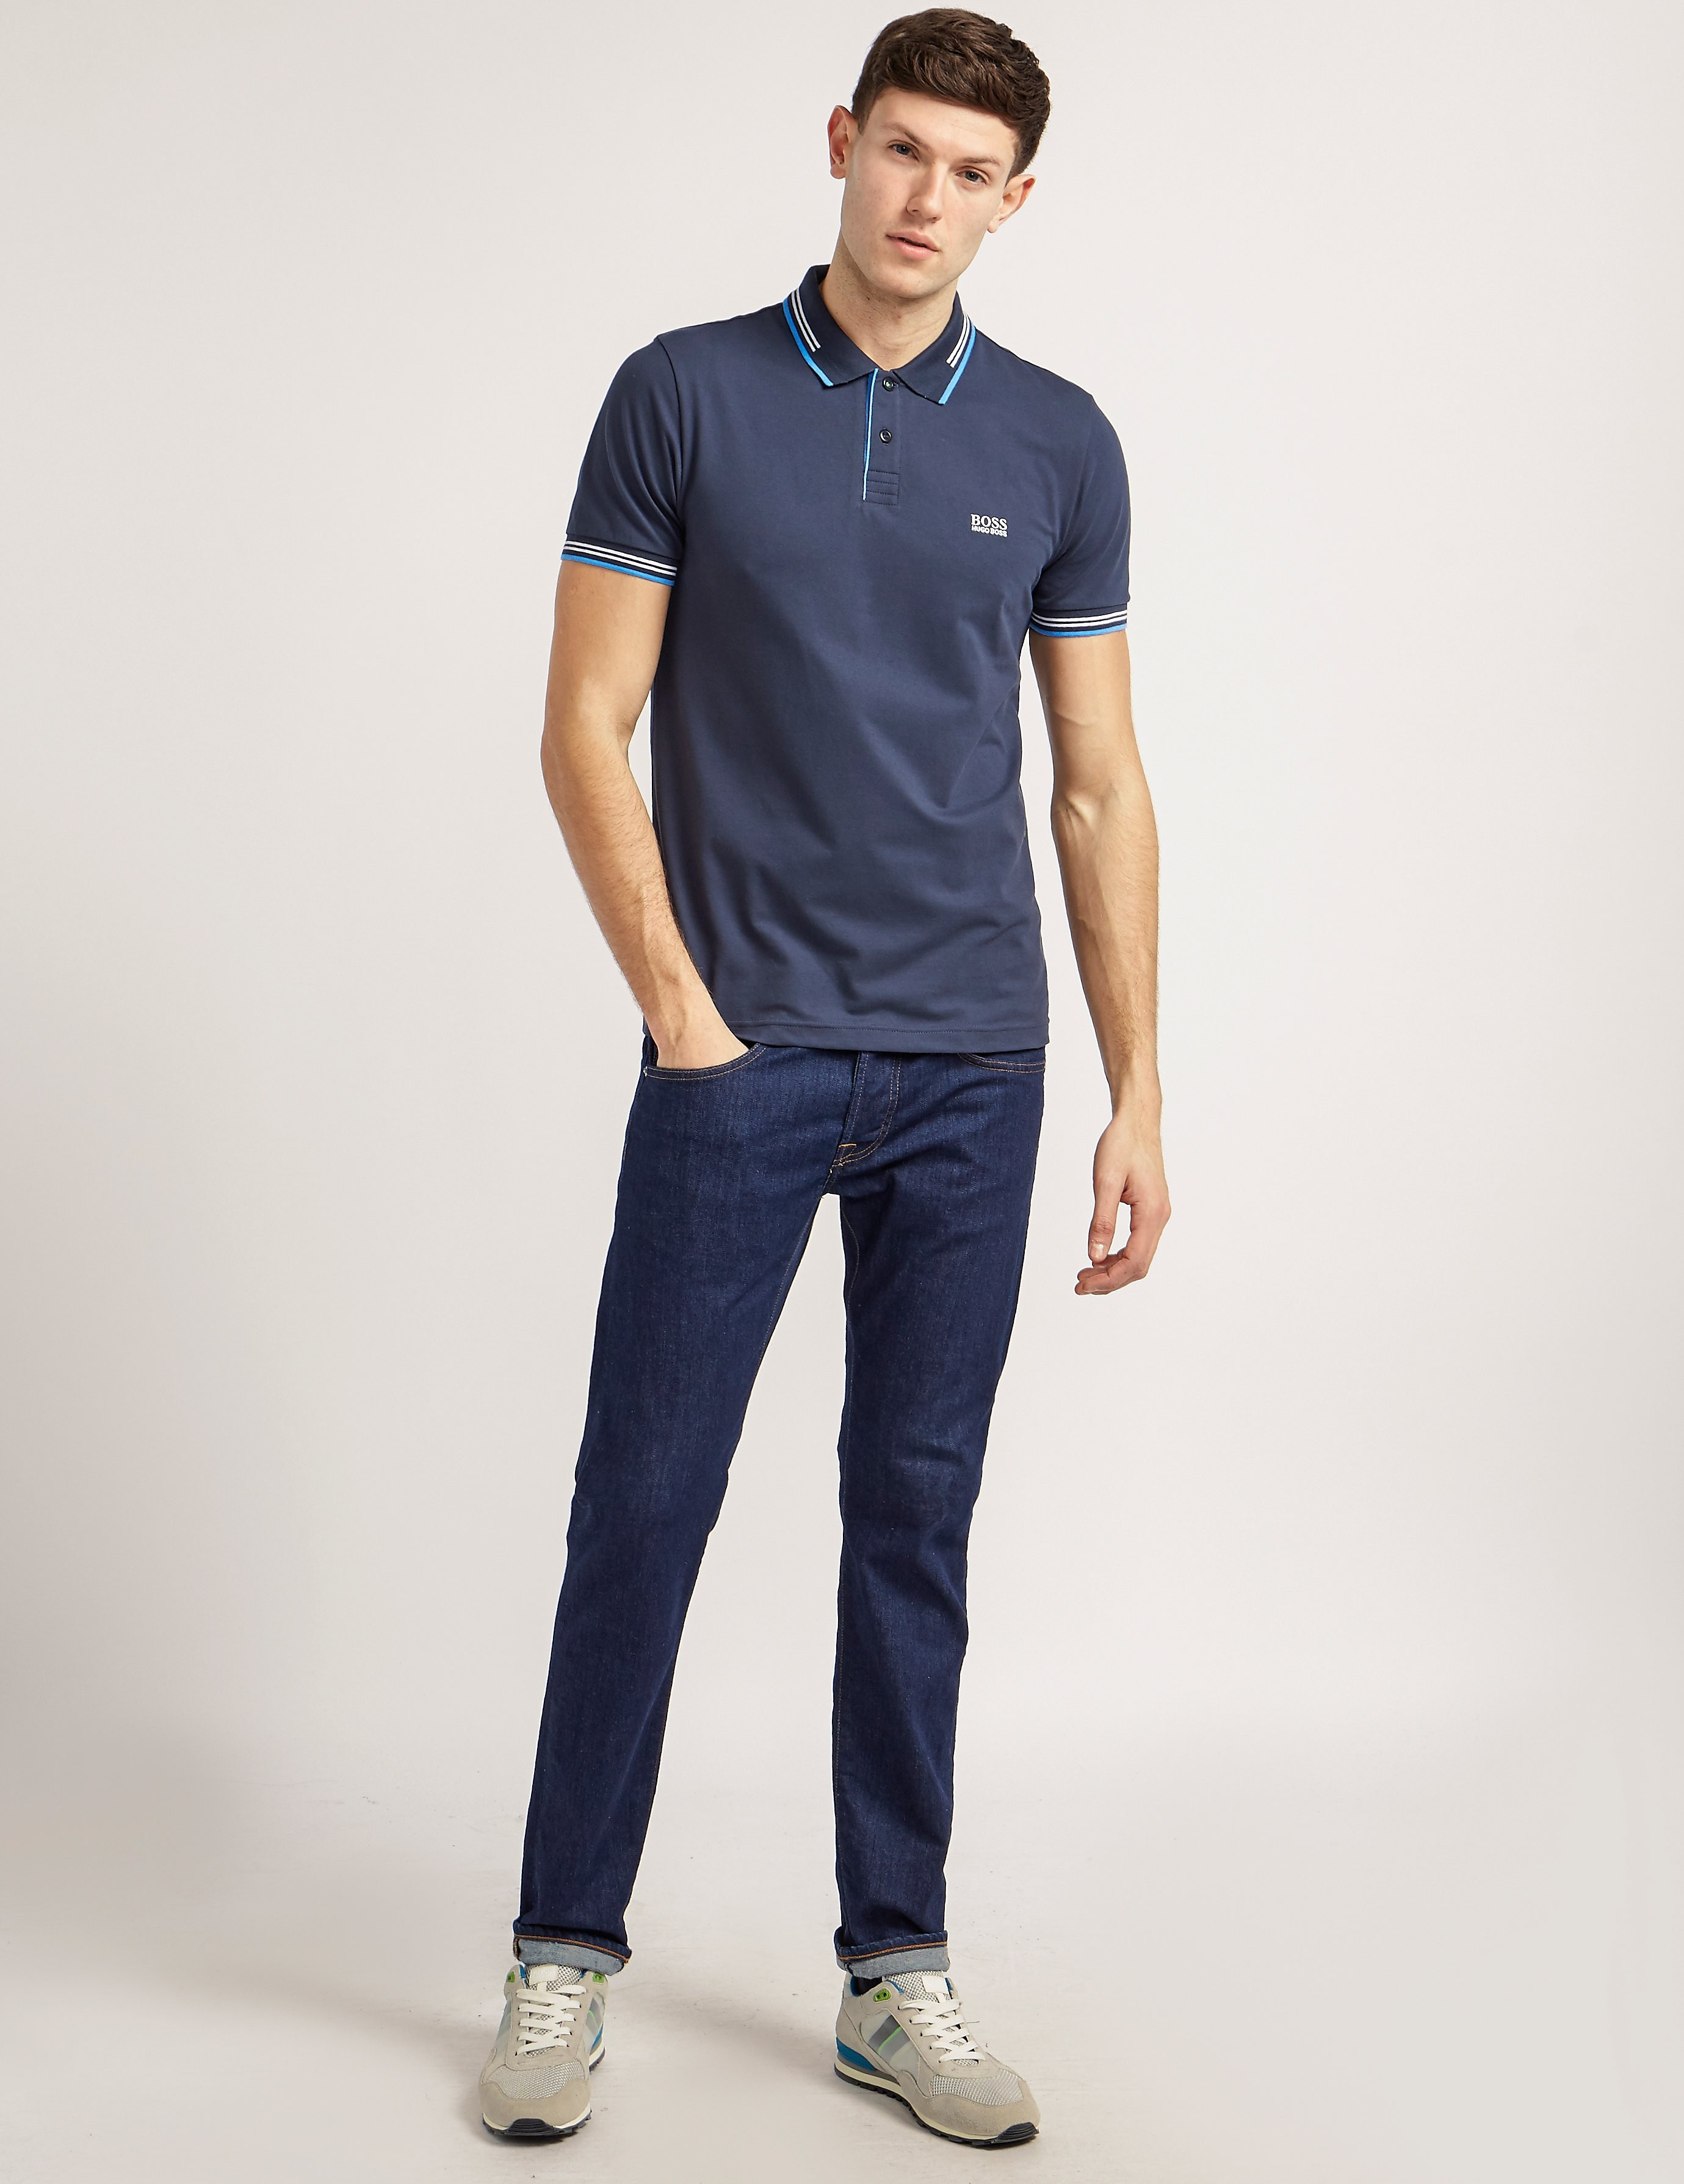 BOSS Green Tipped Polo Shirt